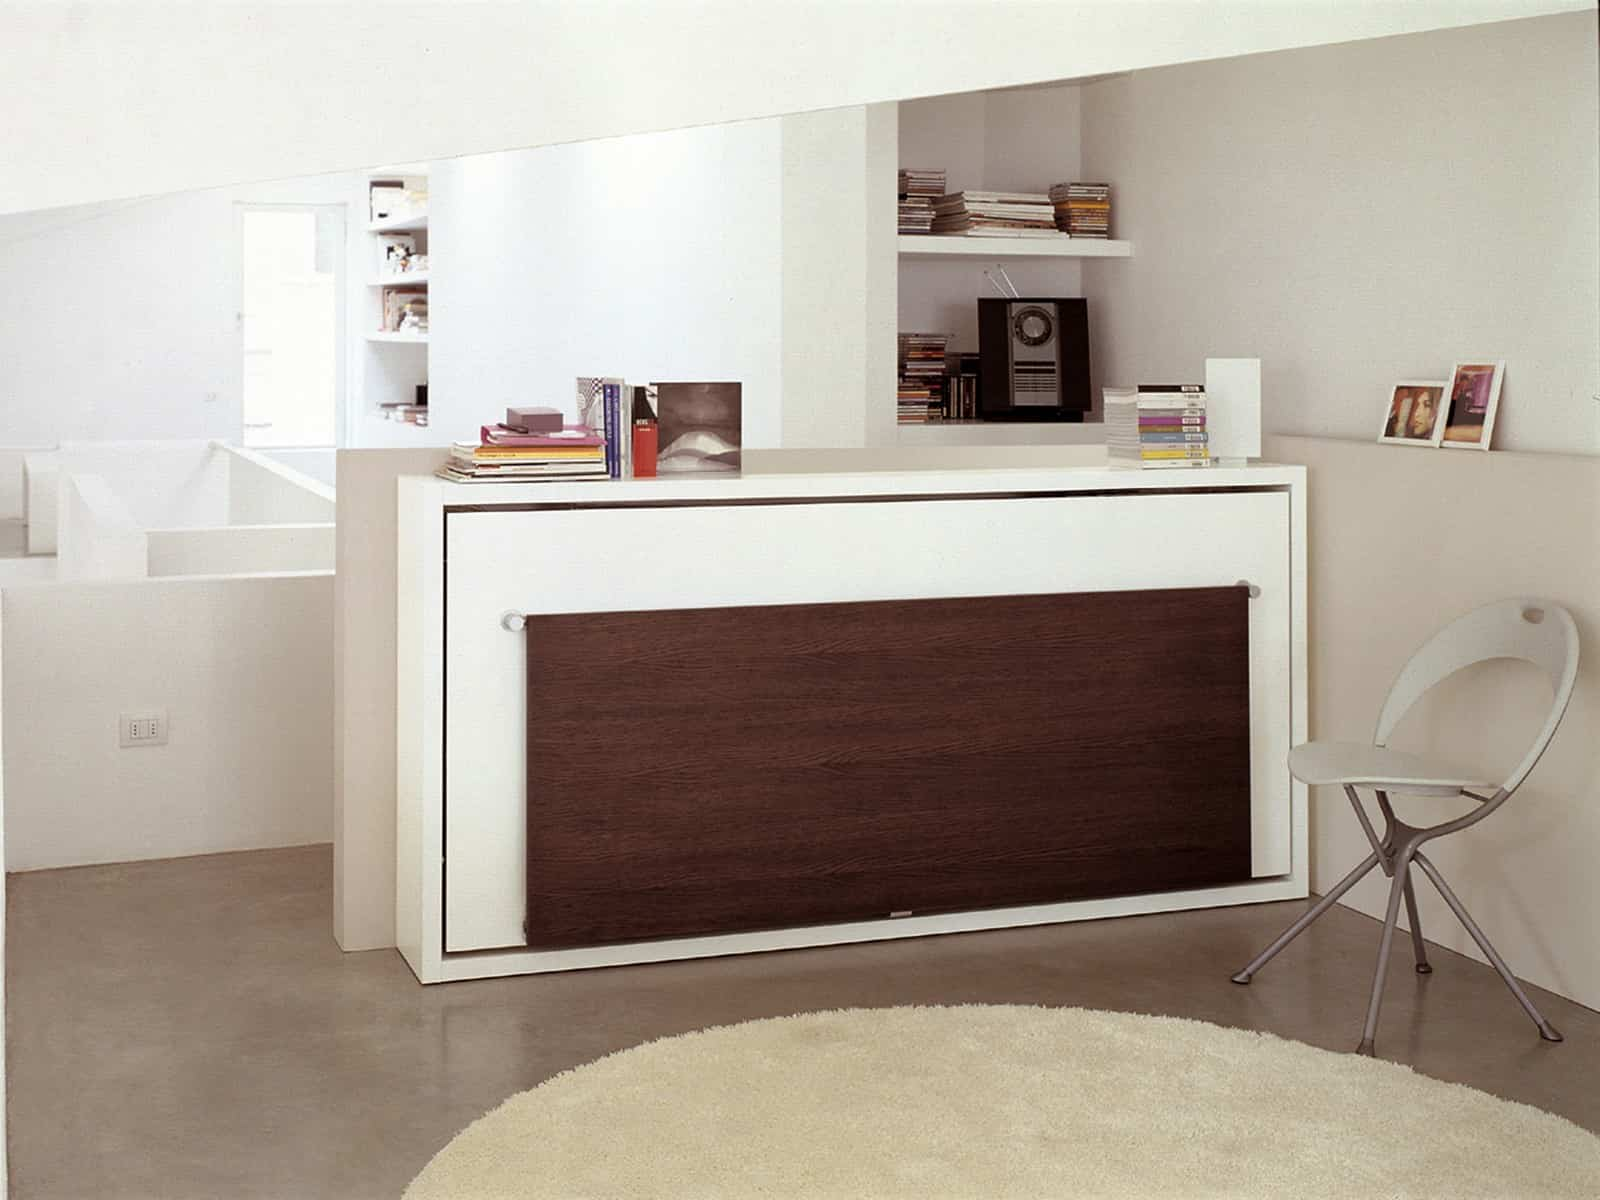 Fuente: www.archiproducts.com